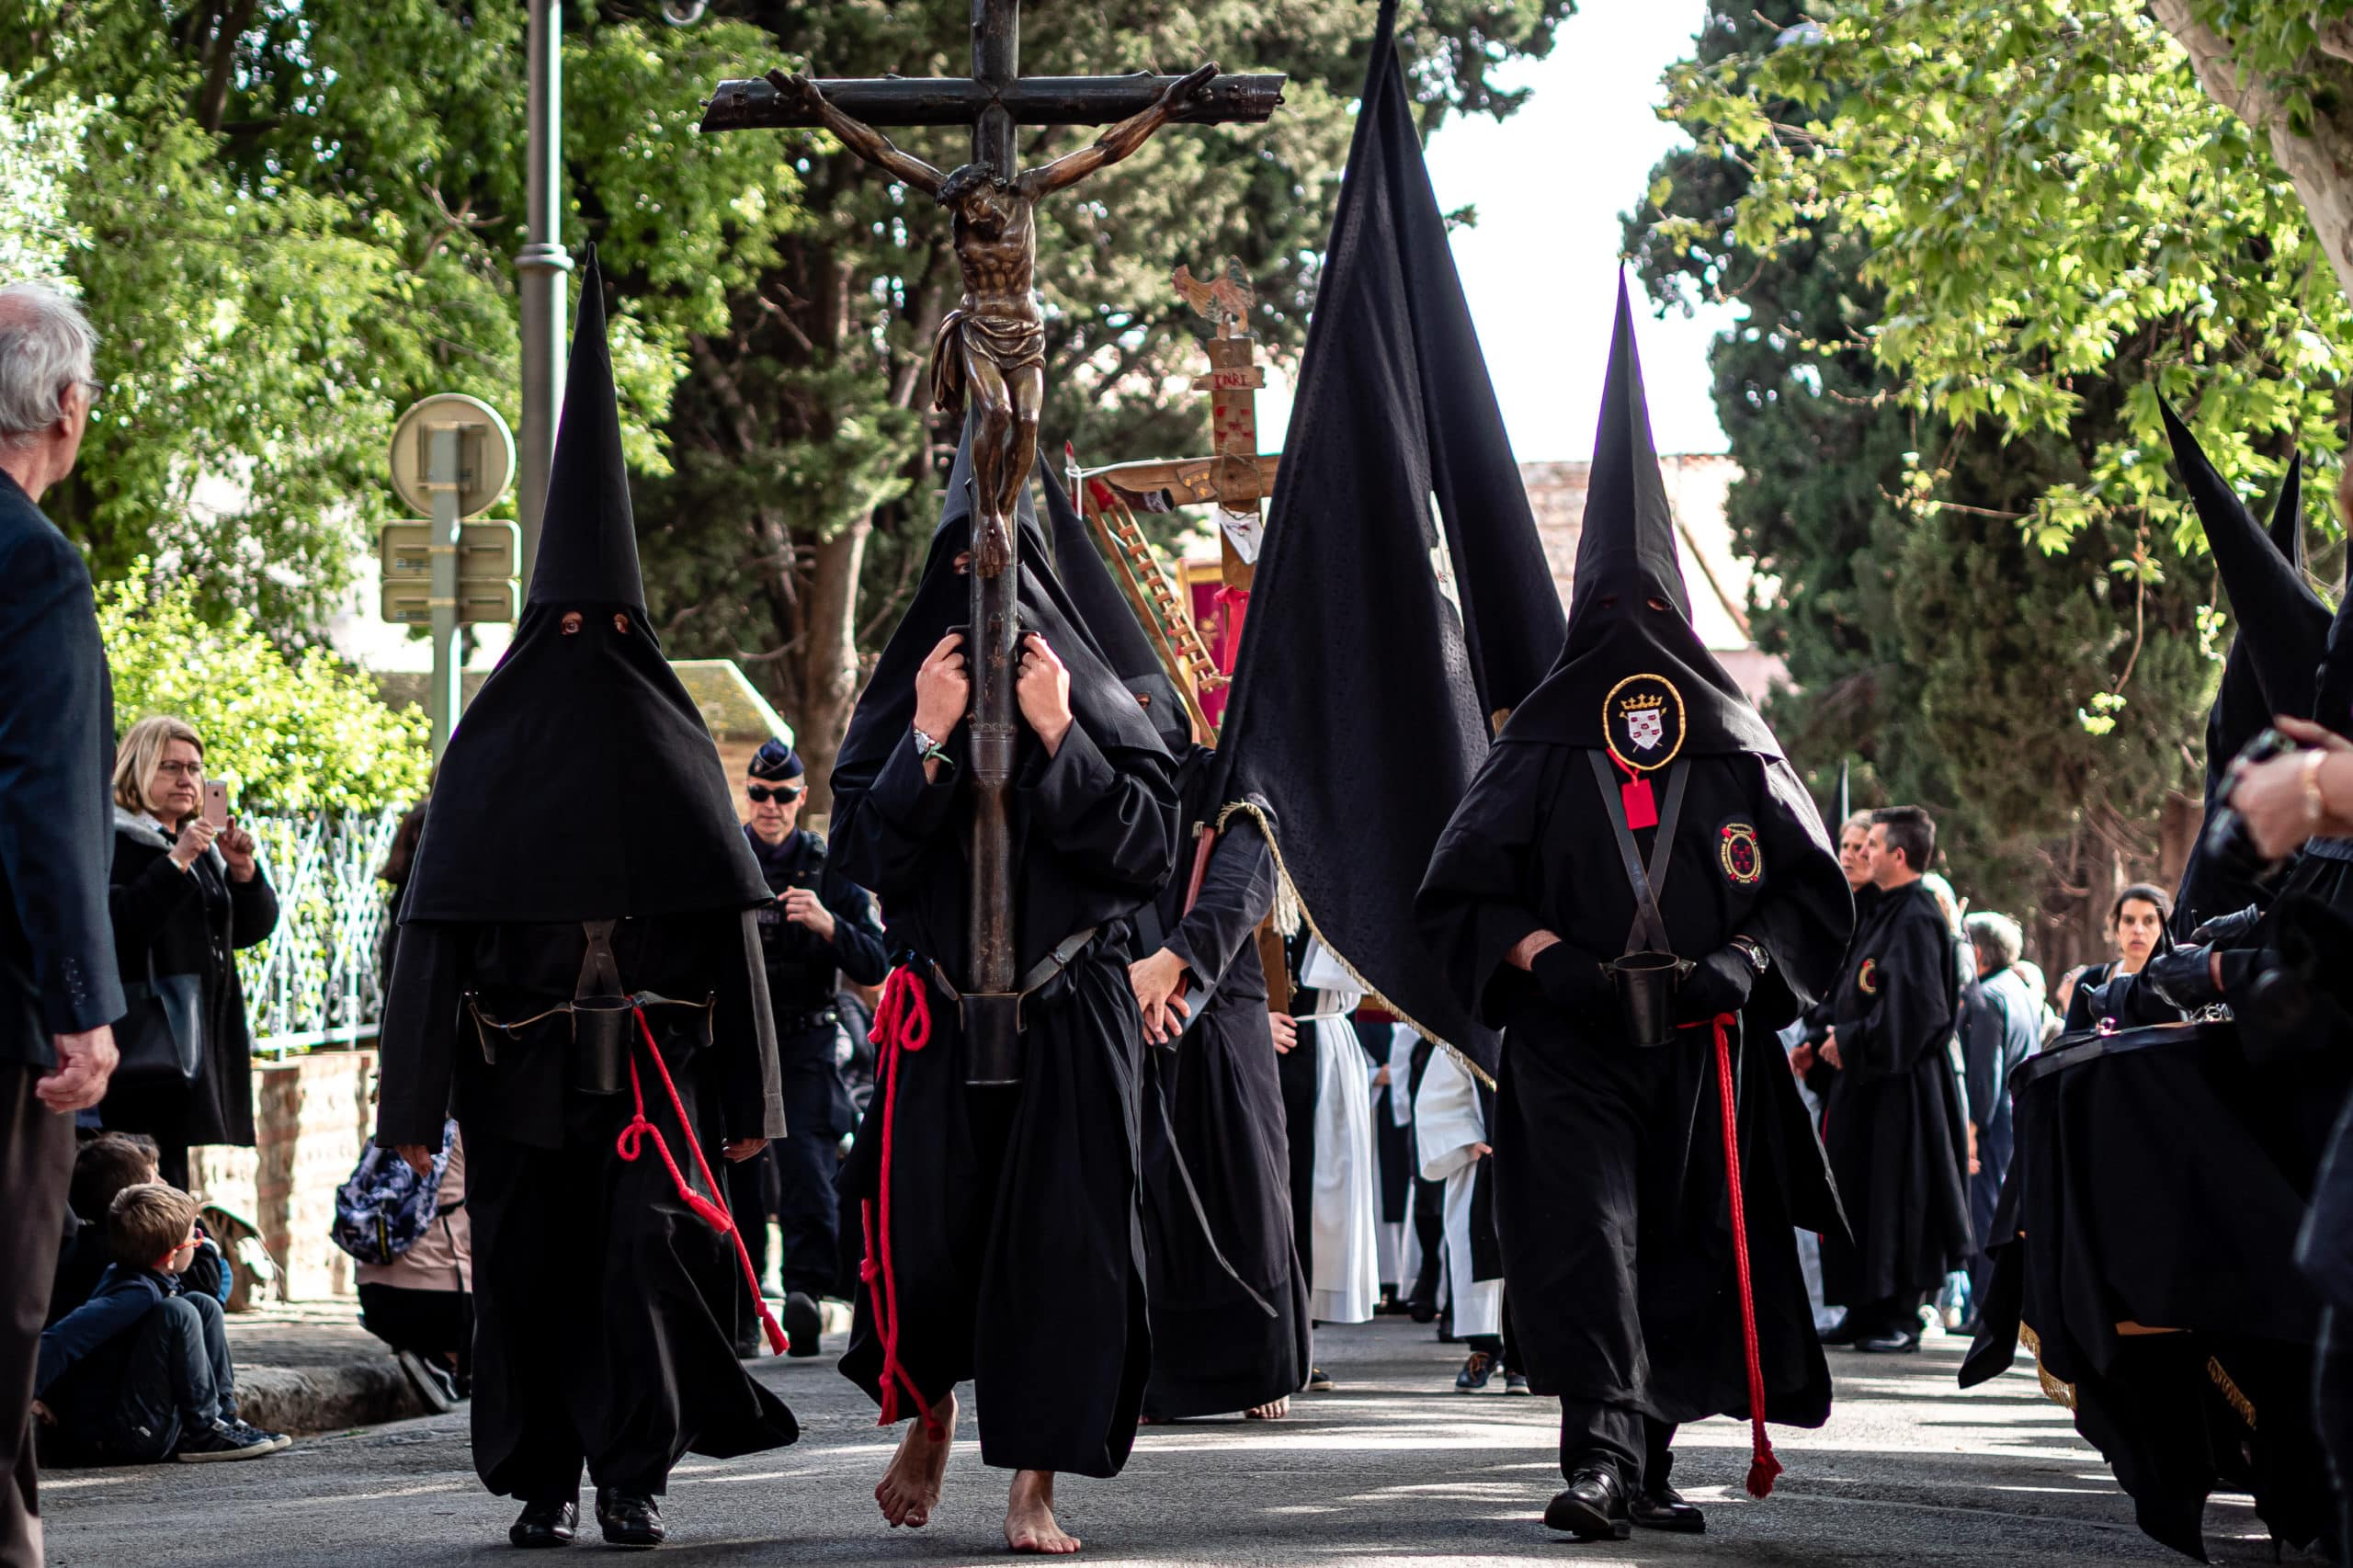 Sanch Procession vendredi saint Perpignan avril 2019